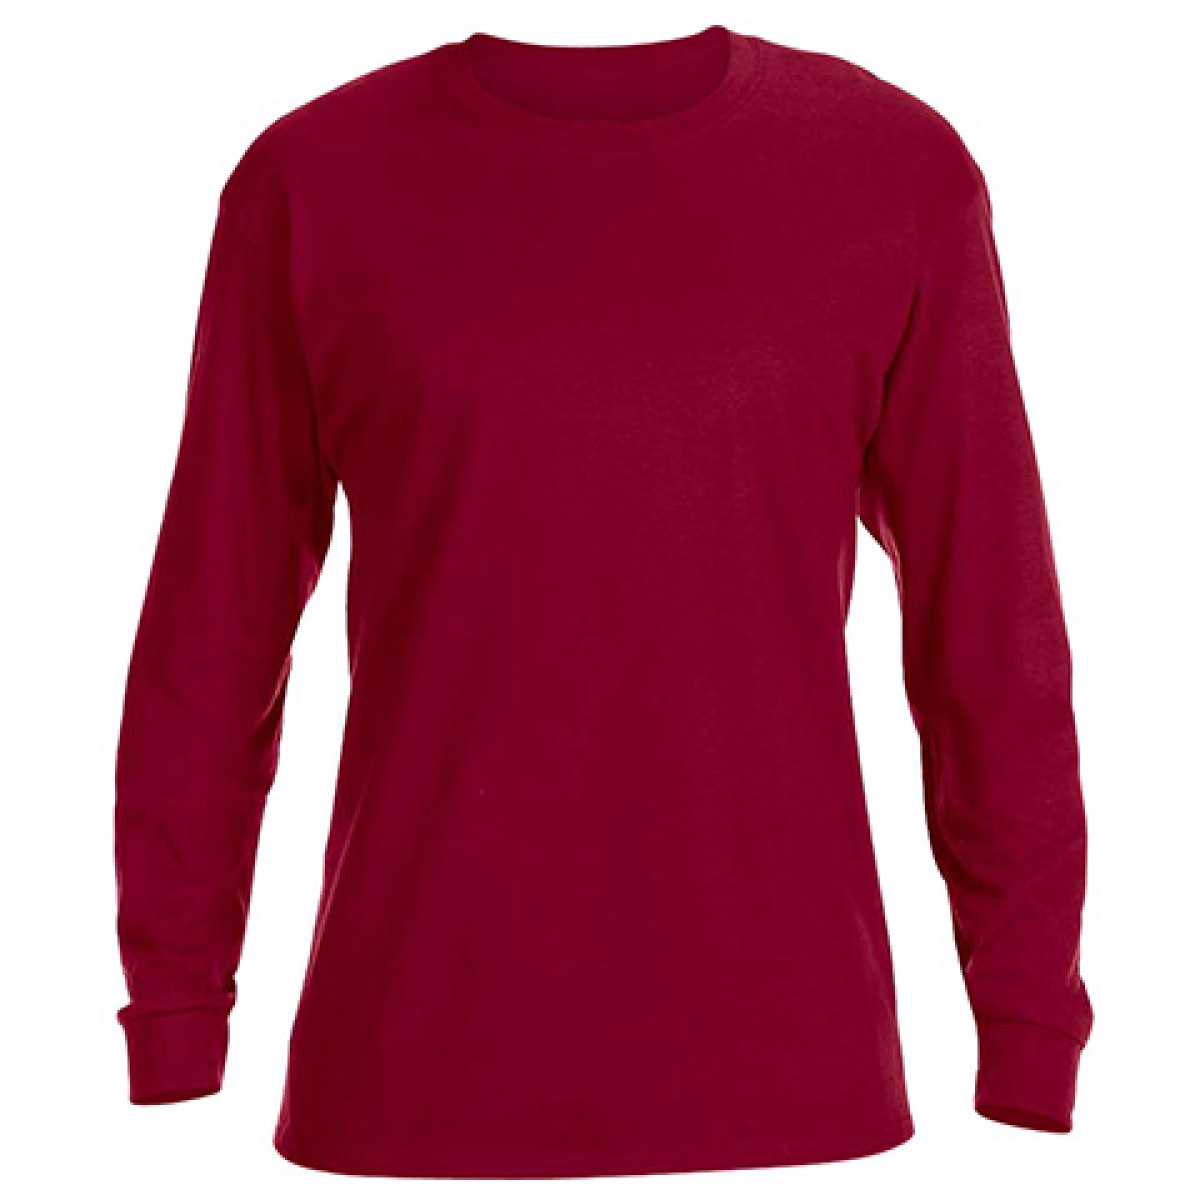 Heavy Cotton Long-Sleeve Adidas Shirt-Red-M